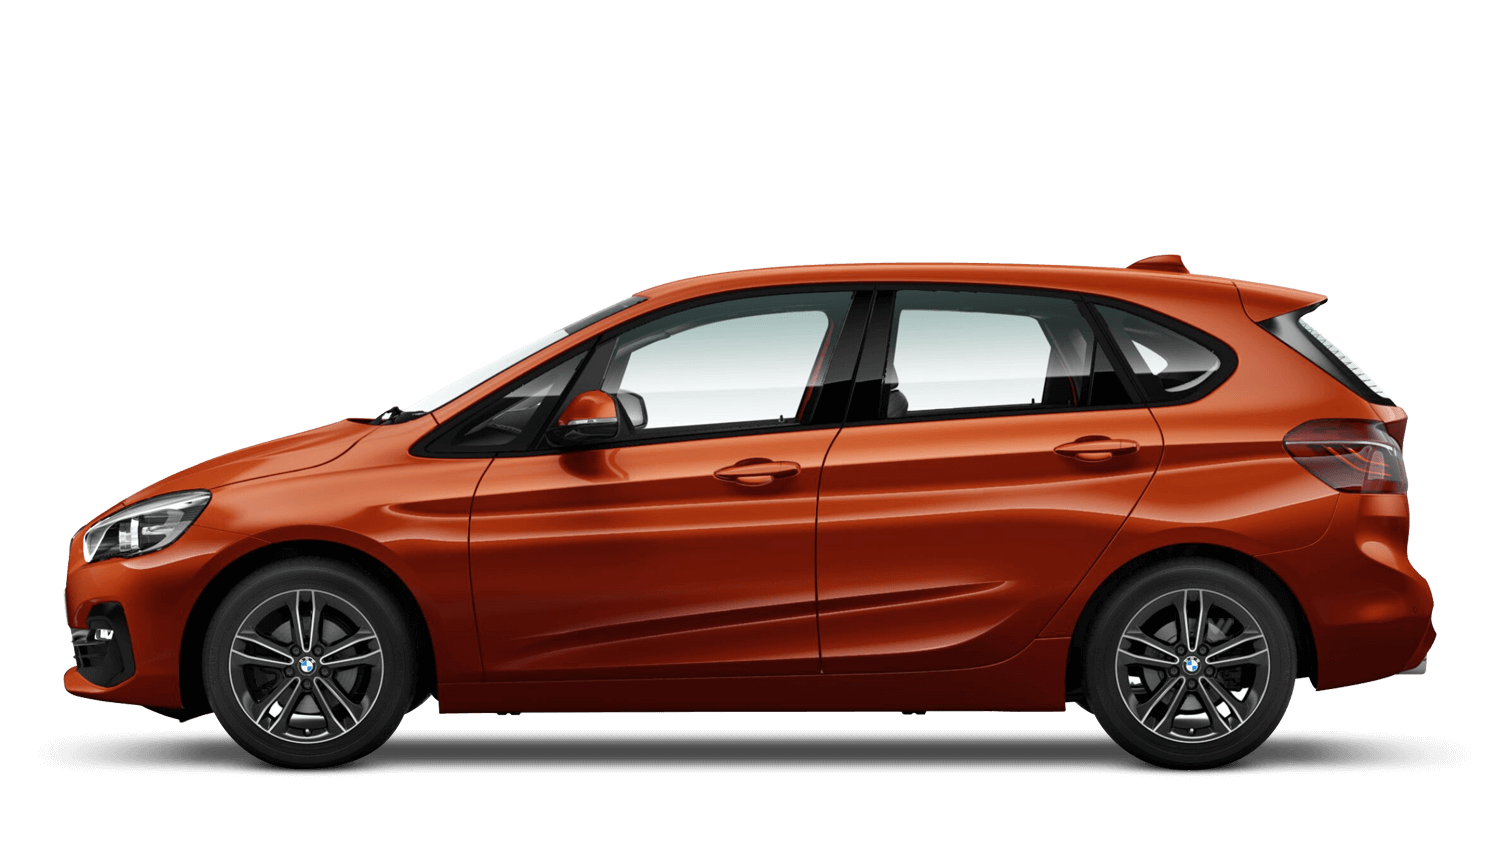 Sunset Orange (Metallic) BMW 2 Series Active Tourer